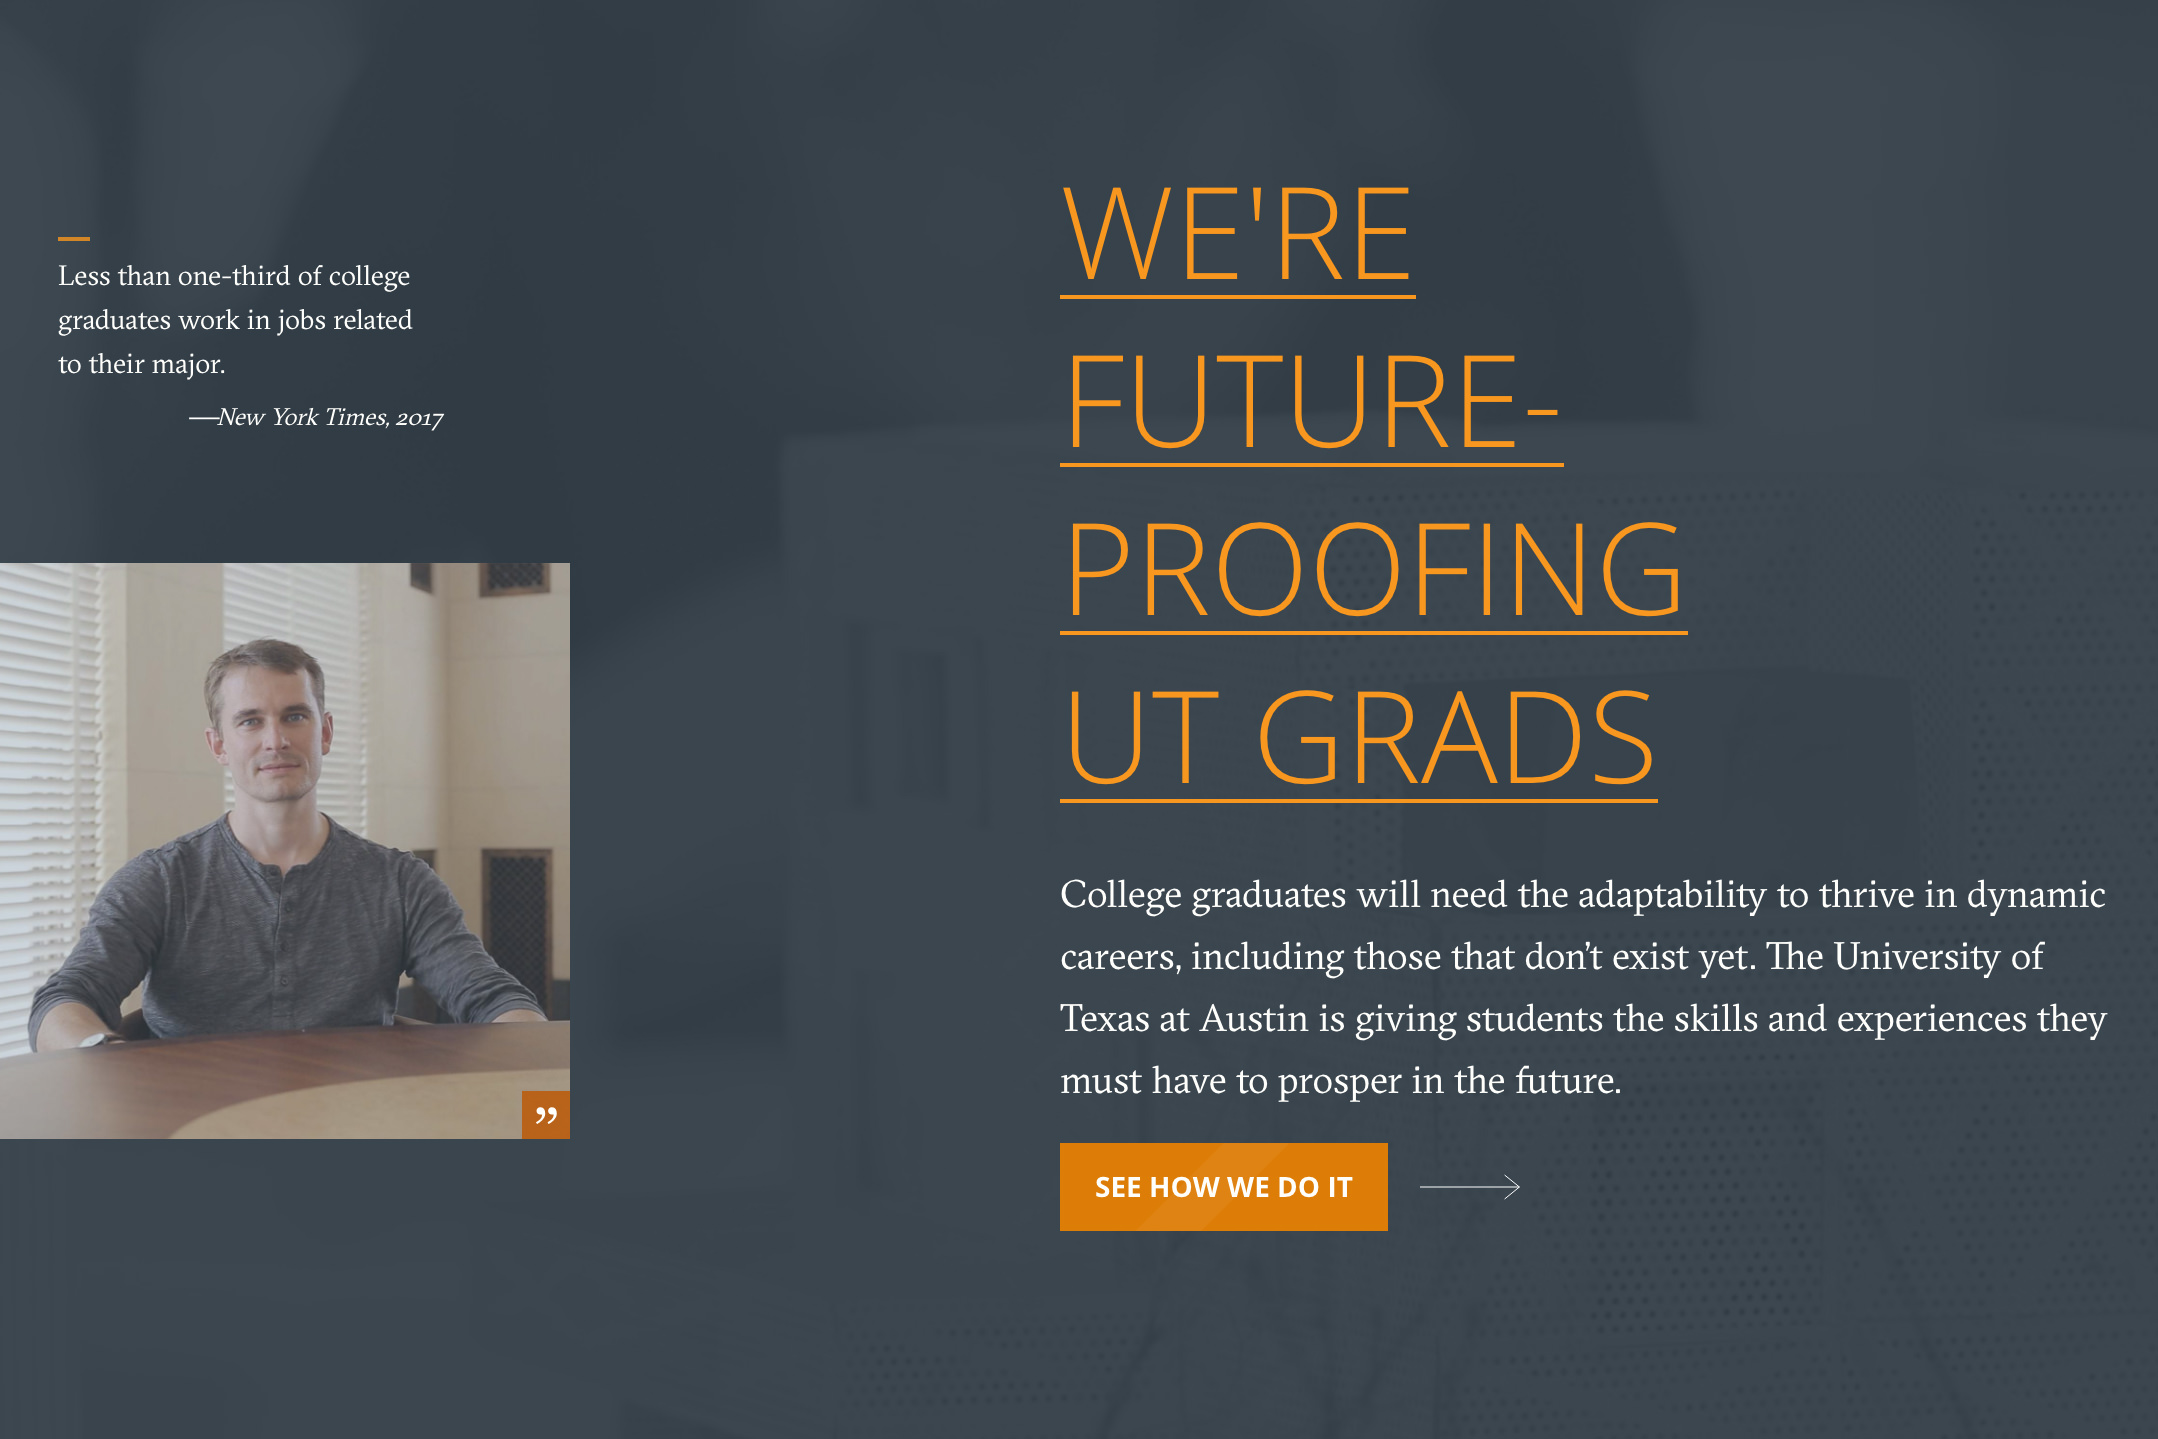 The School of Undergraduate Studies is Future-Proofing UT Grads